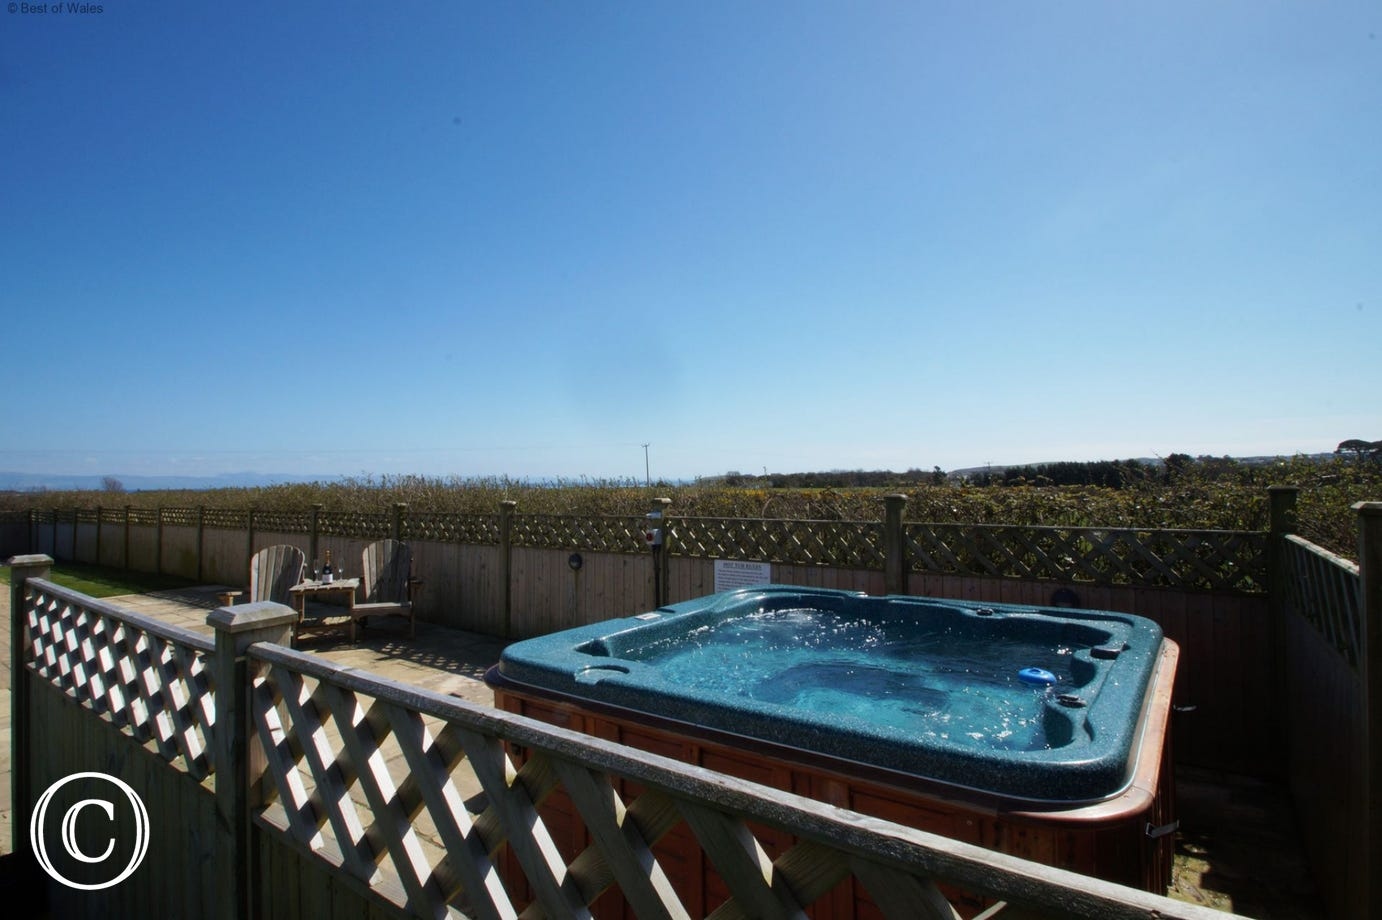 Private hot tub on the patio - perfect for a relaxing holiday